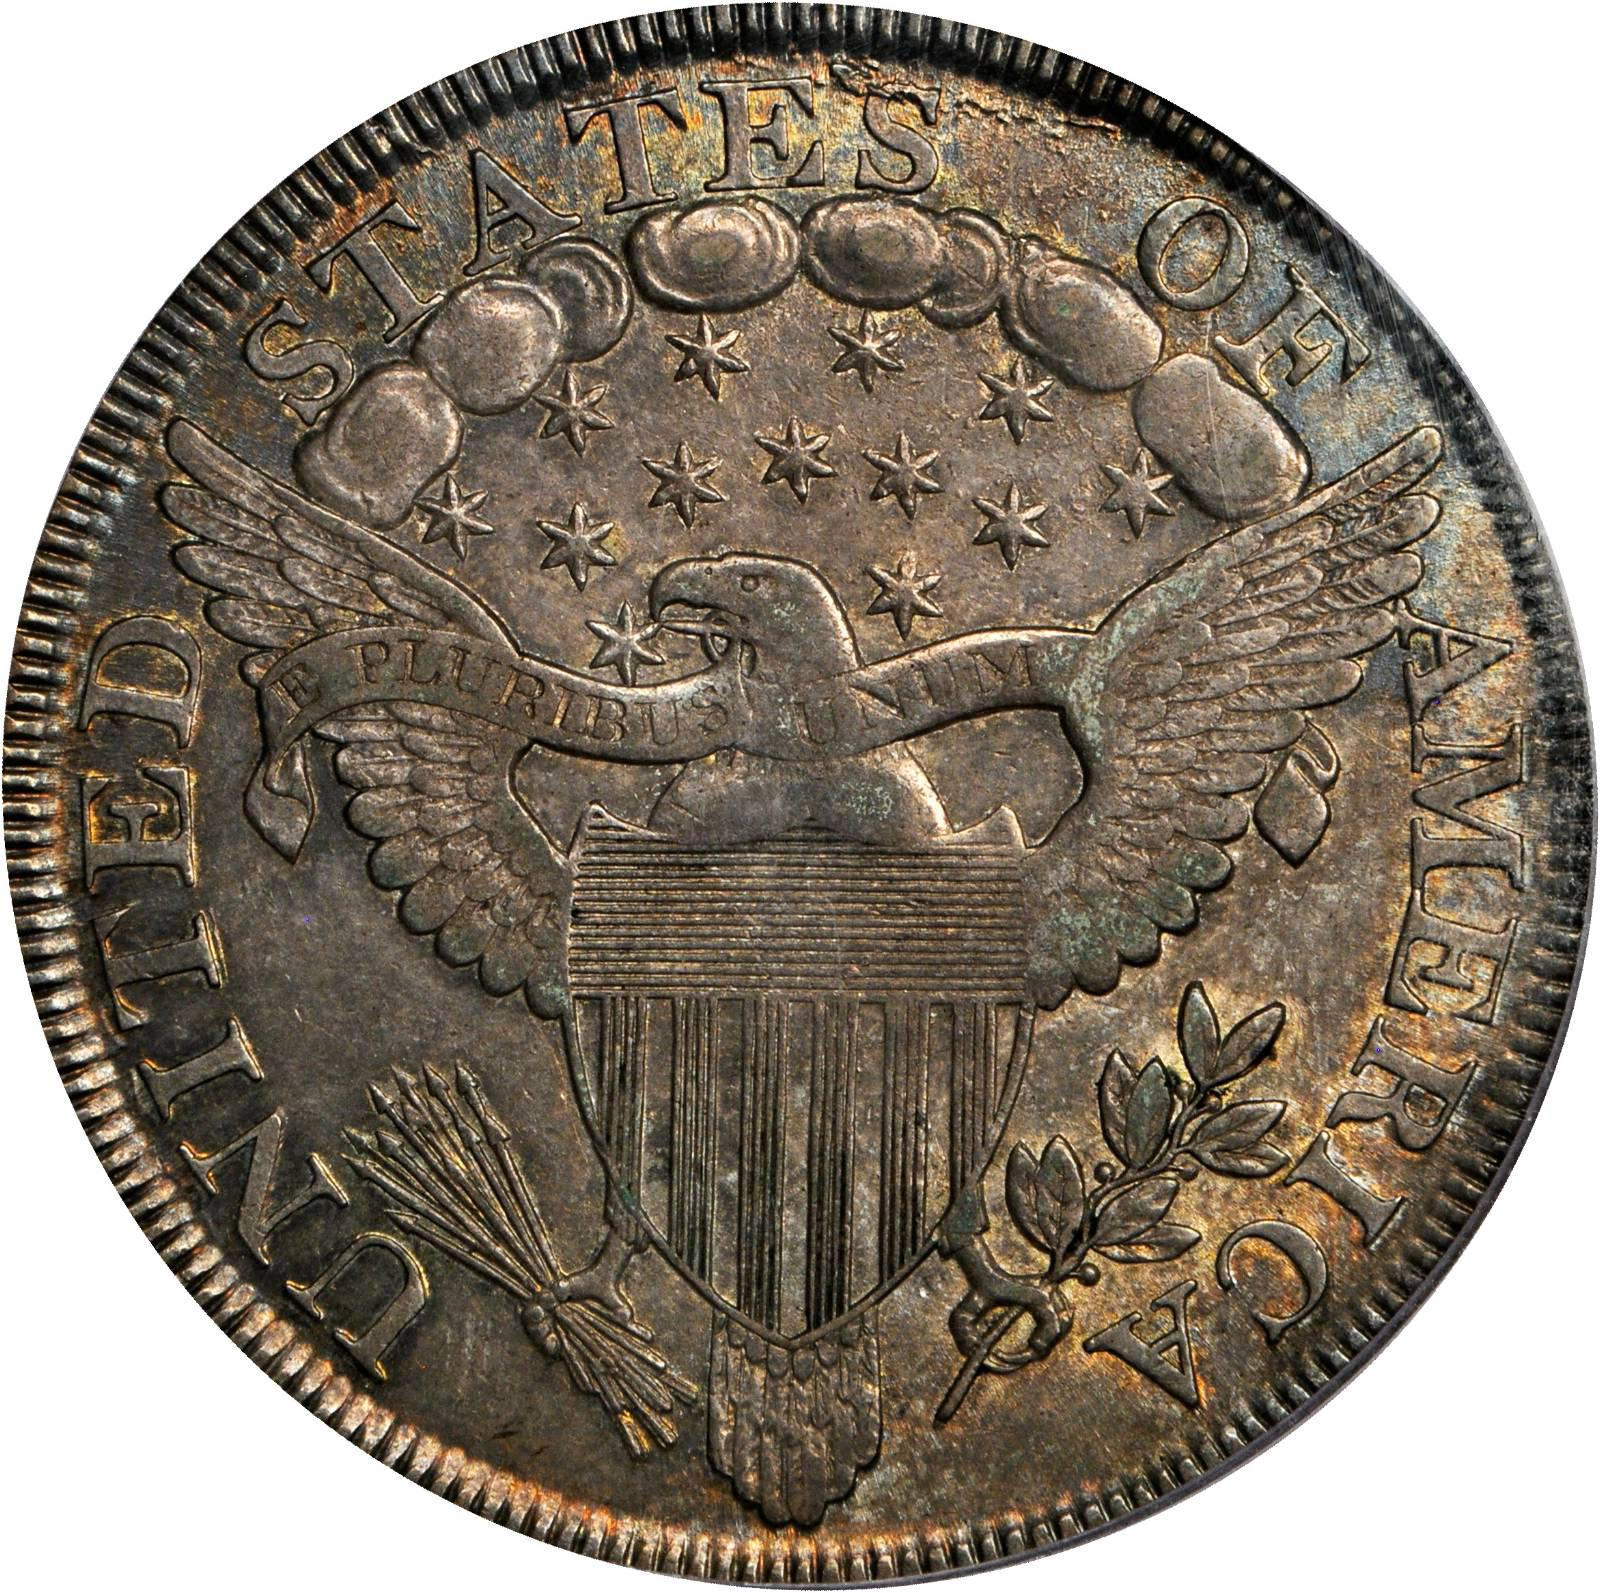 1800s coins